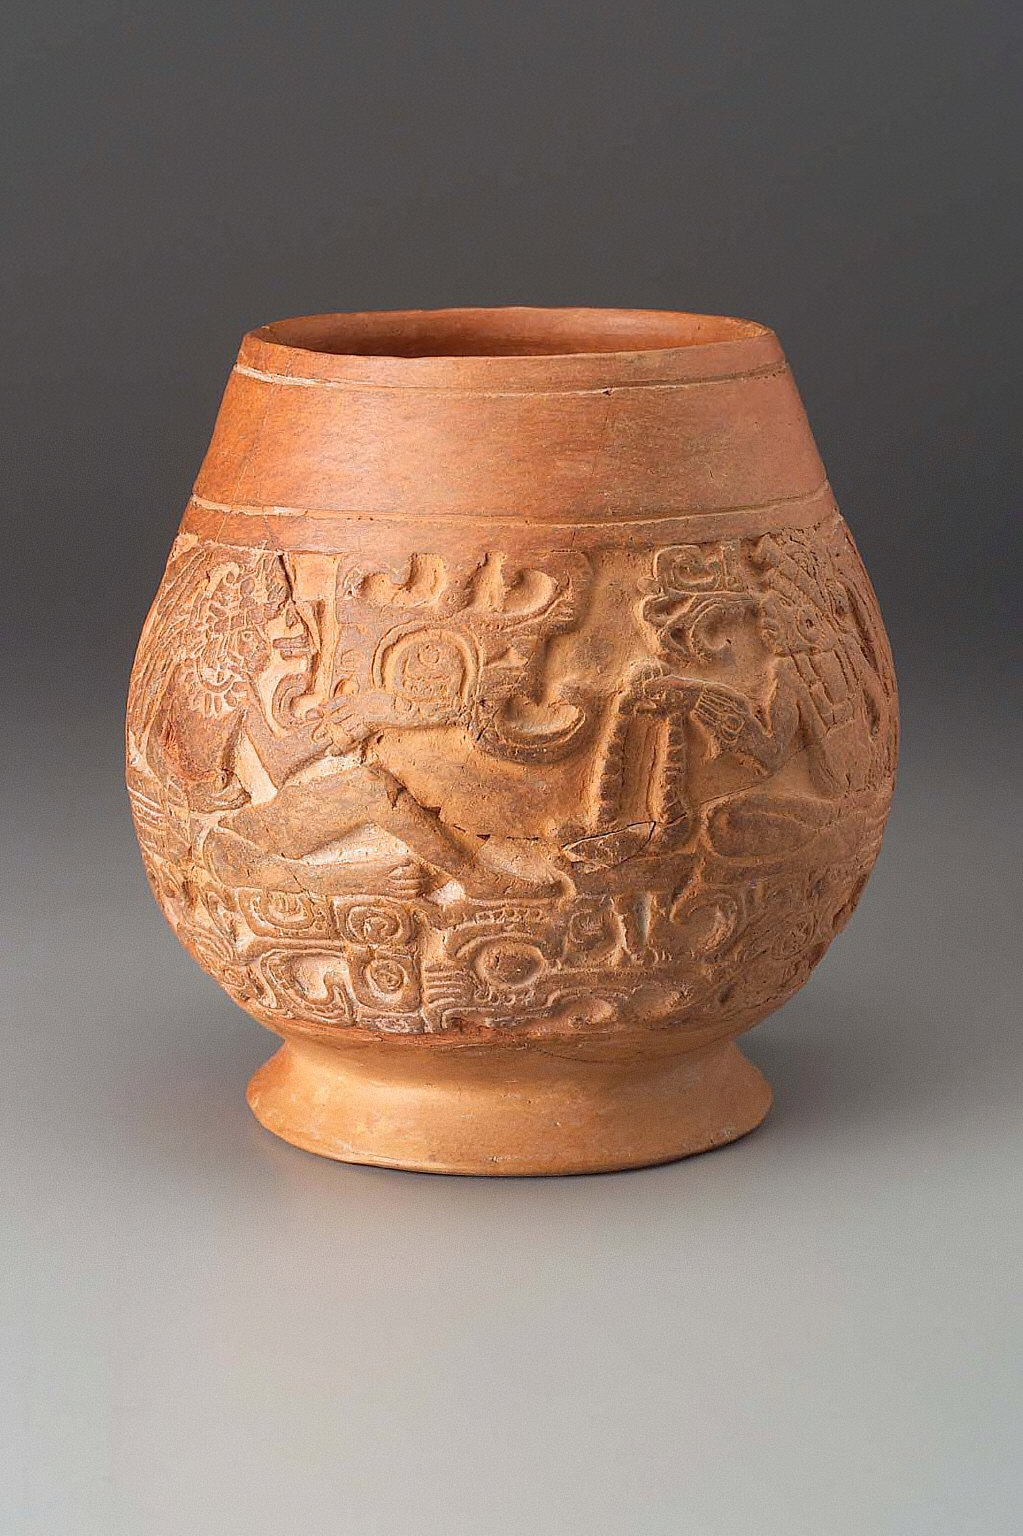 Vase with modeled and incised imagery